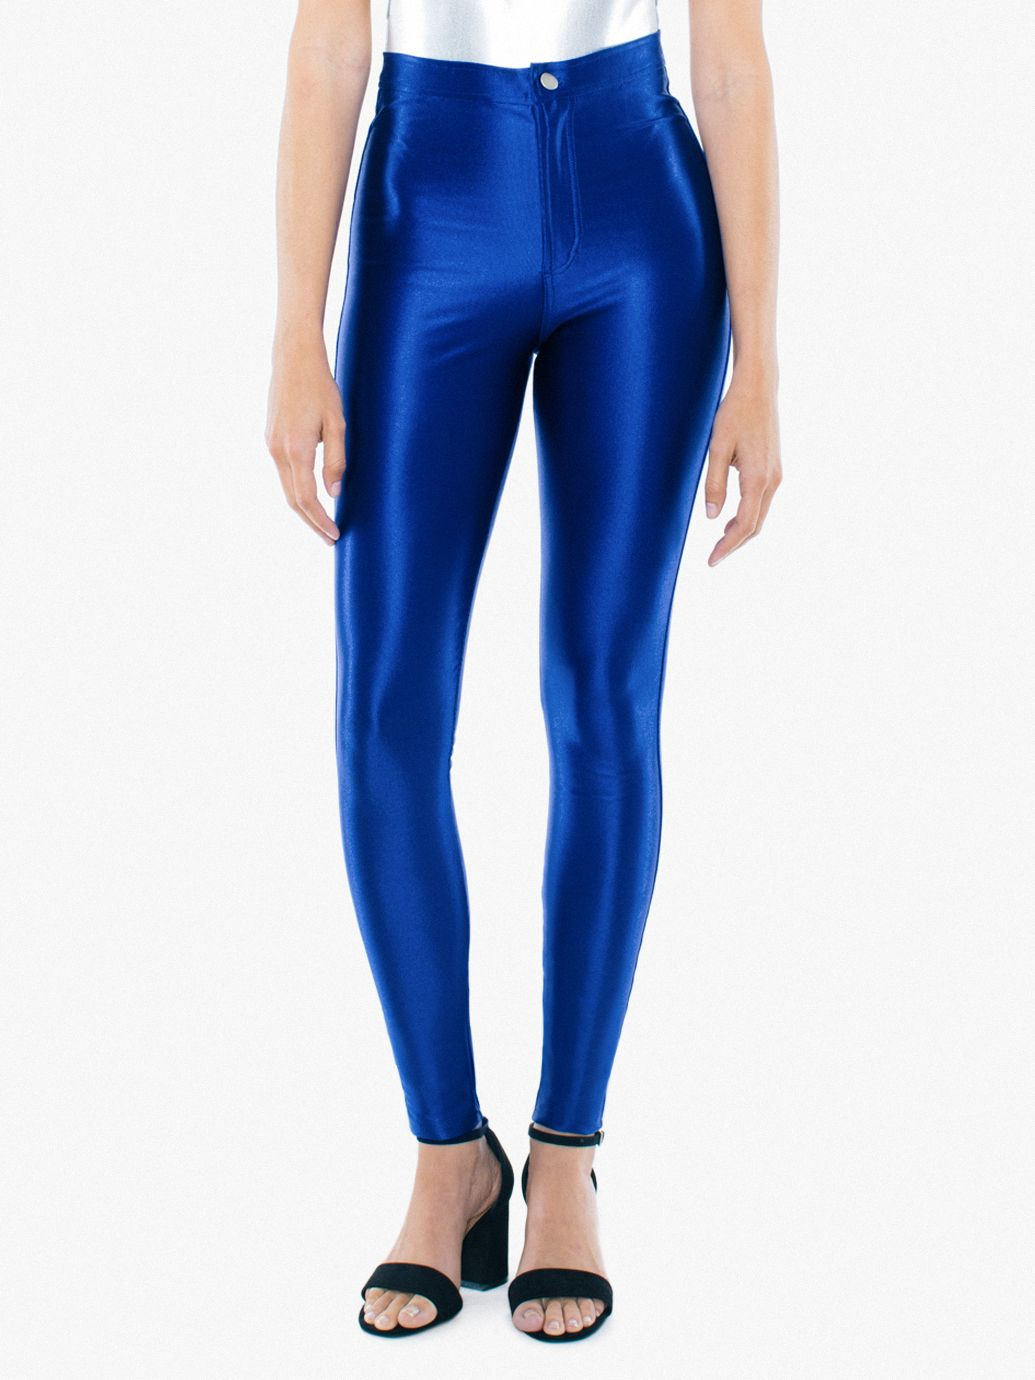 Look - How to blue wear disco pants video